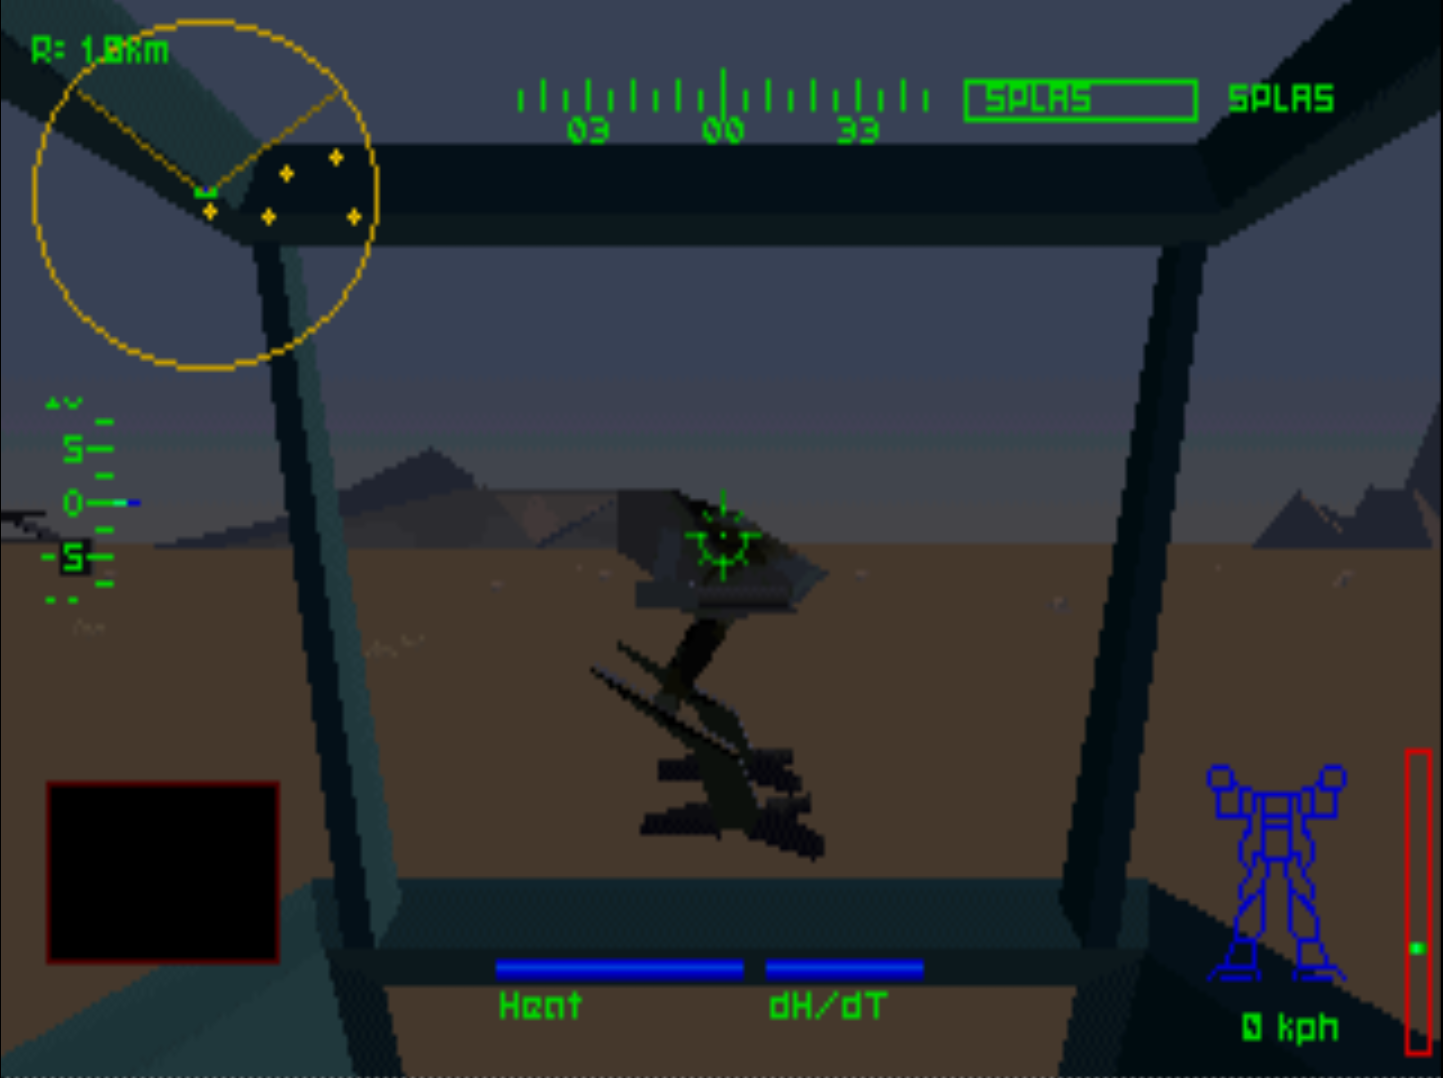 Figure 3 - Mech Warrior 2 with 320x240 resolution